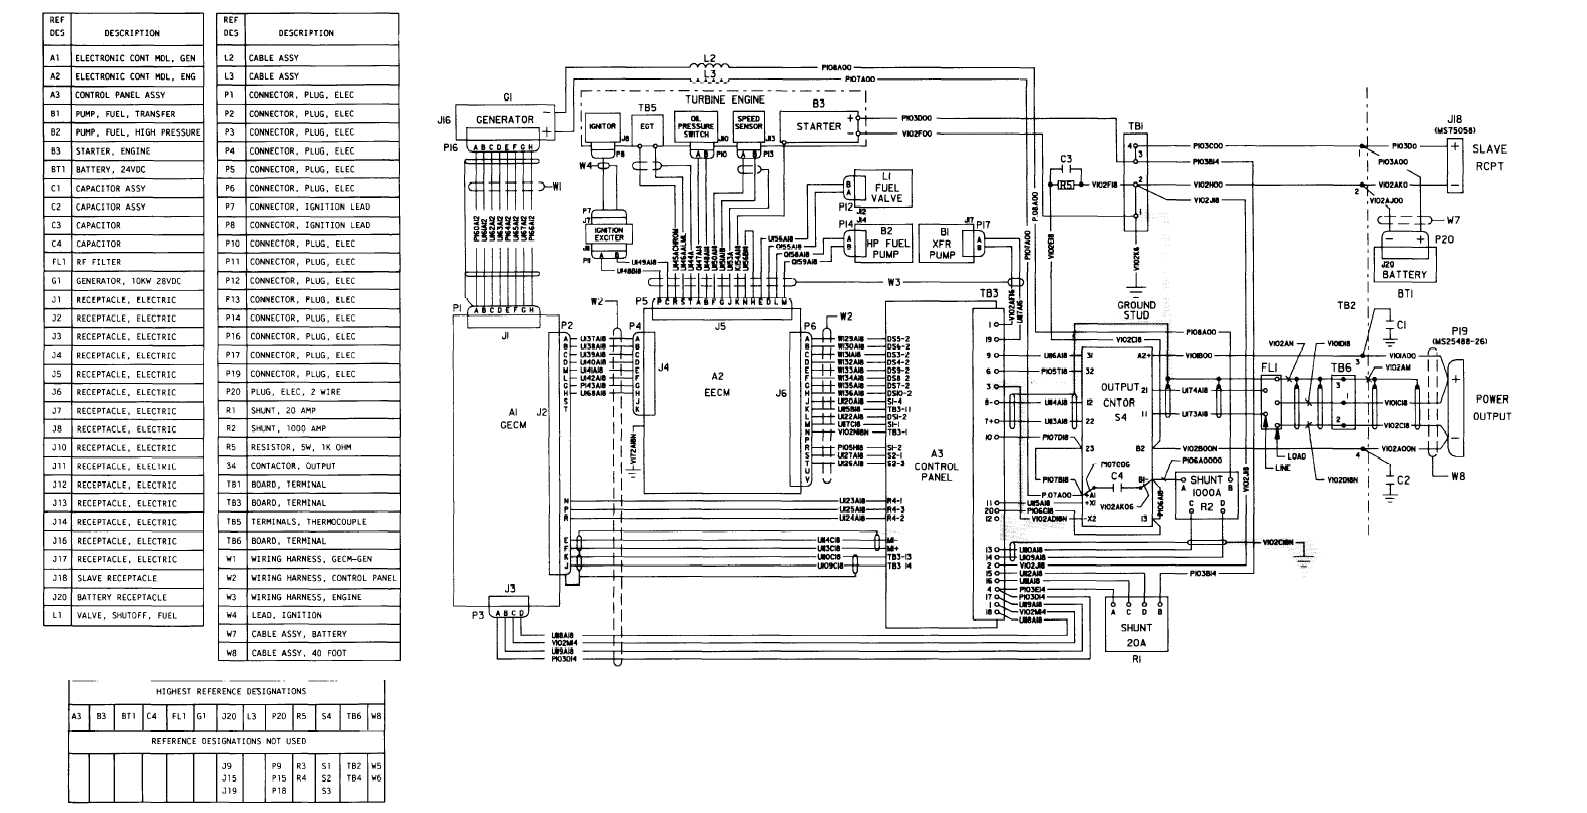 generator wiring schematic genset wiring diagram genset image wiring diagram marine engine generator installation diagram marine wiring on genset